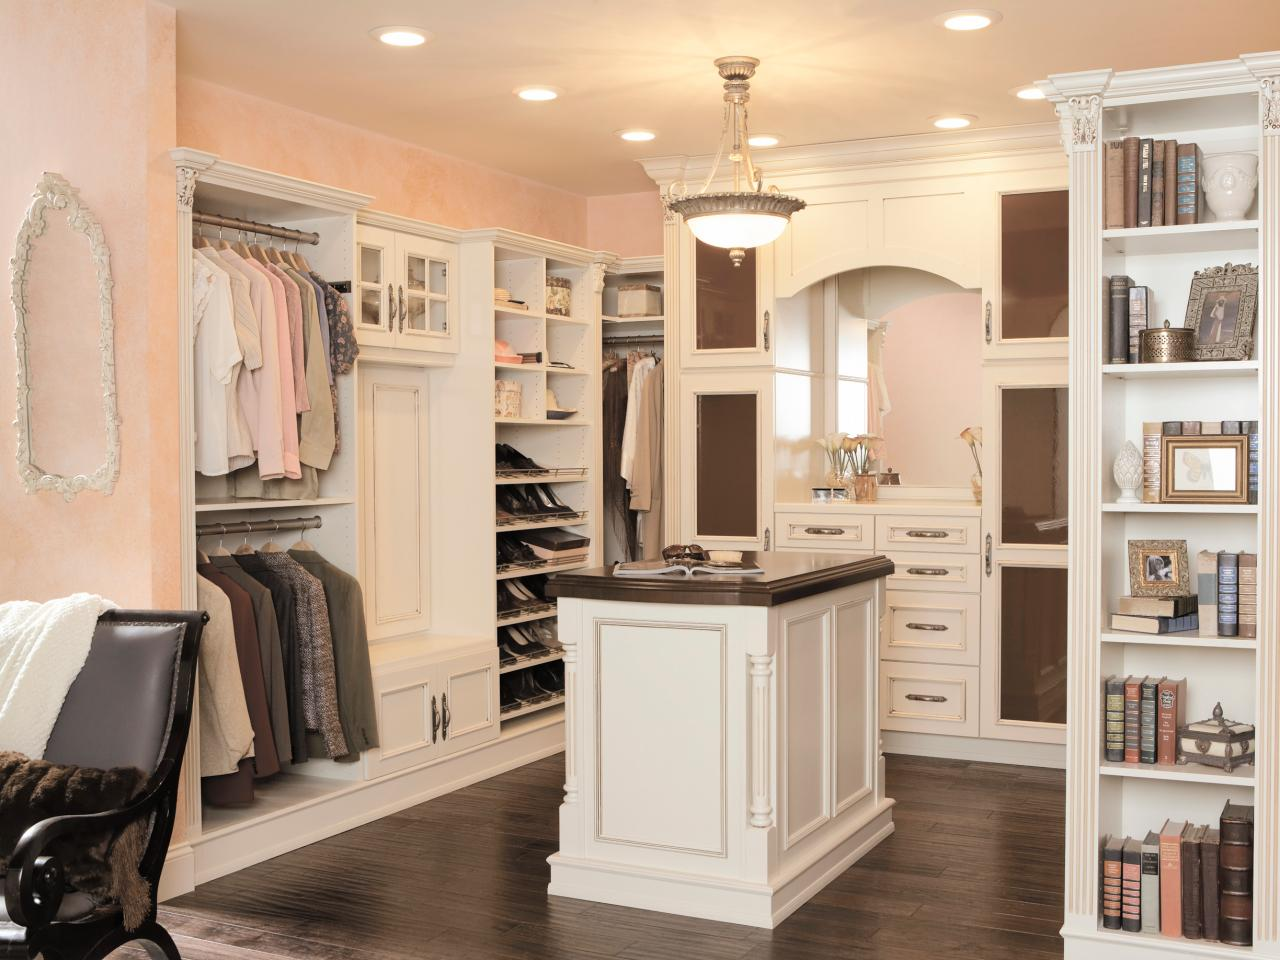 Bedroom Closets Design bedroom closet ideas and options | hgtv